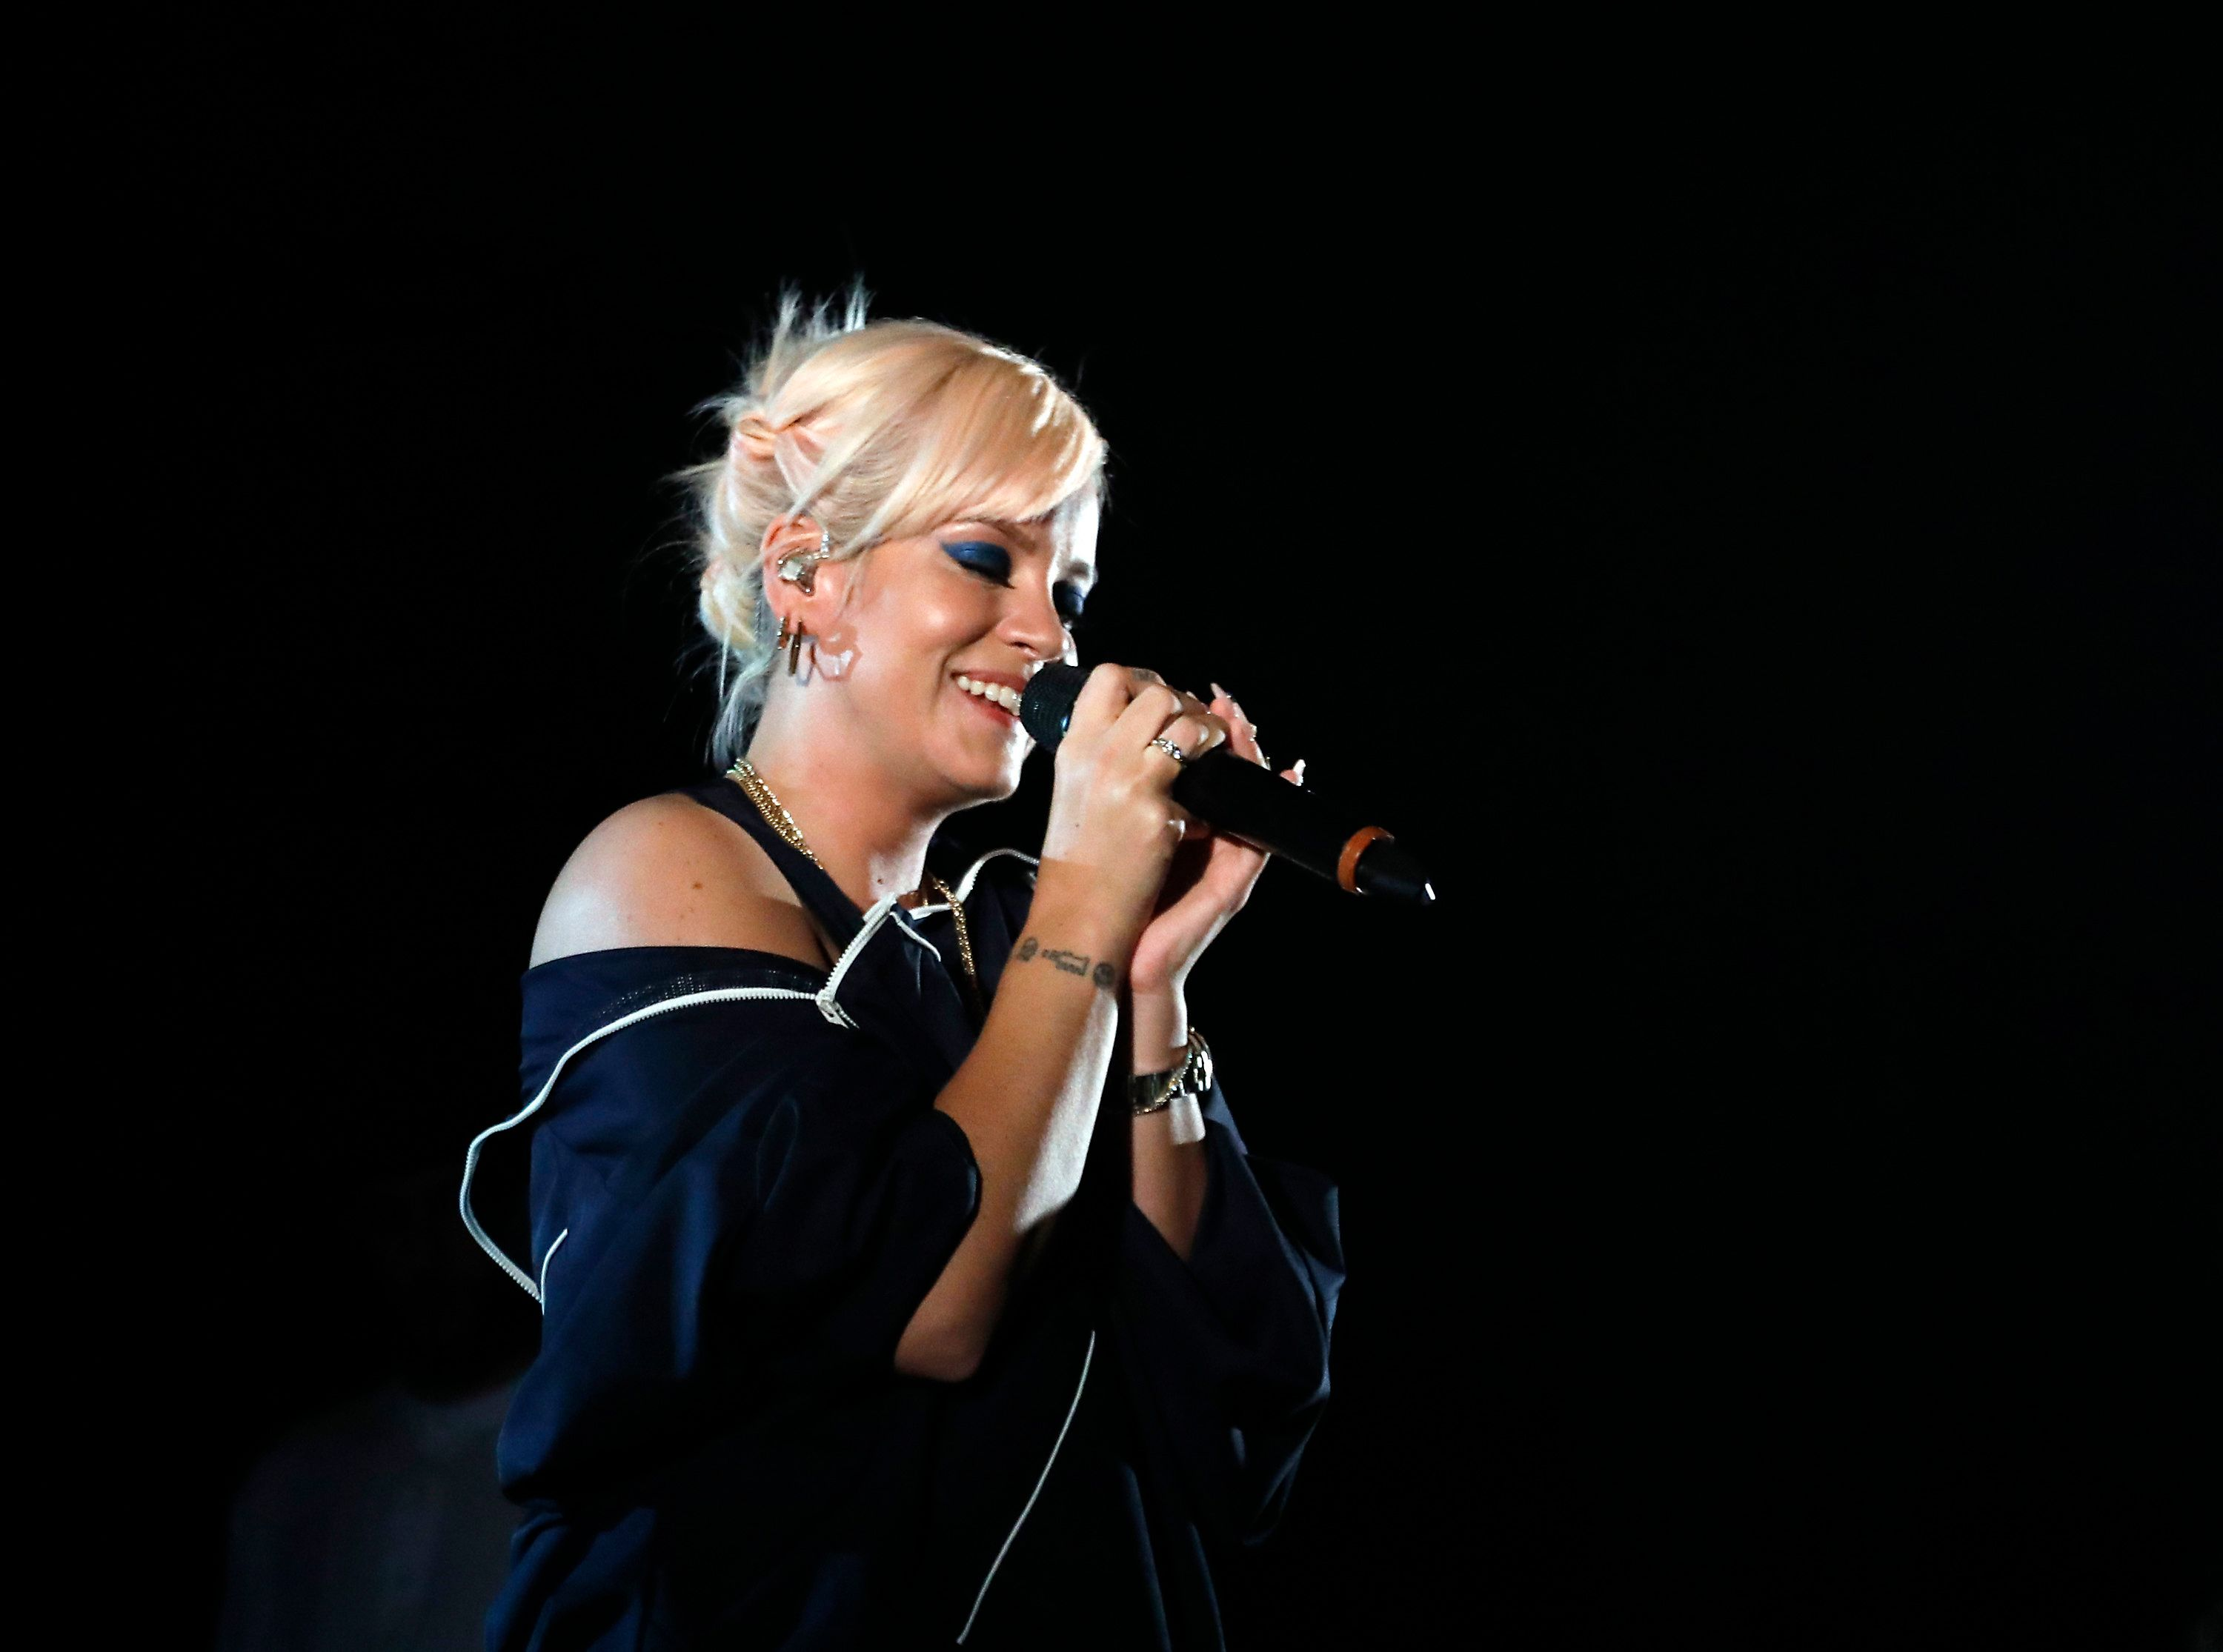 Lily Allen Refuses To Be Shamed After Being Sent 'Upskirting' Photos On Twitter